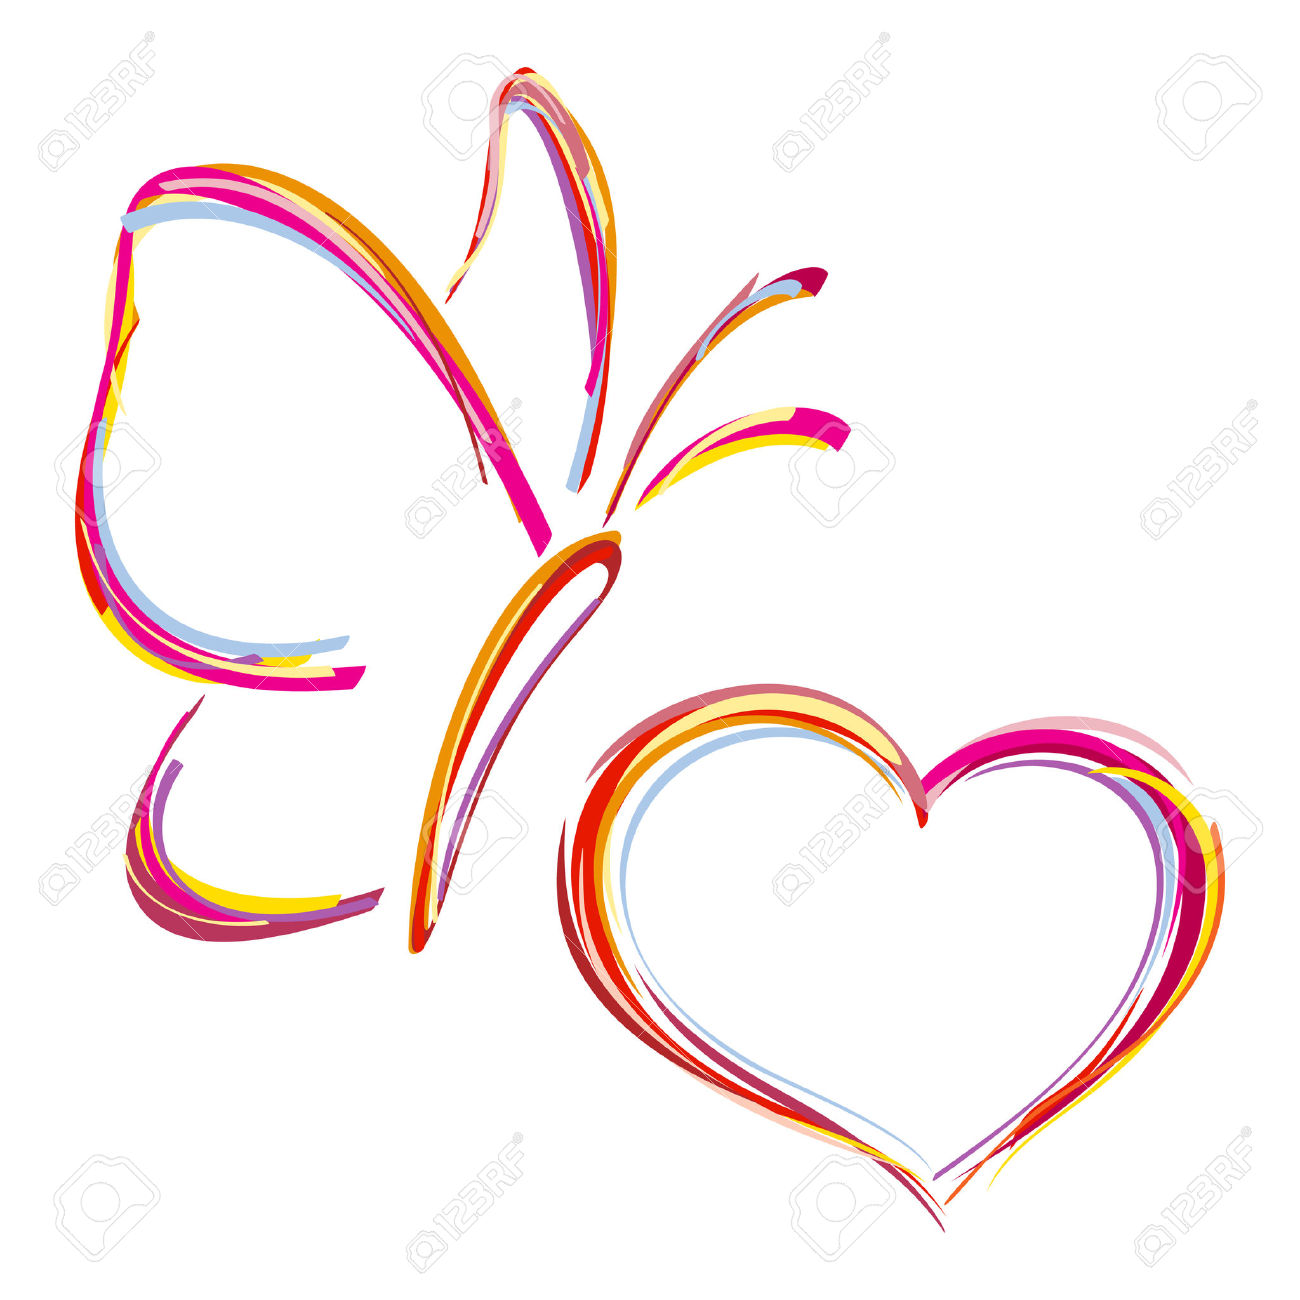 Butterfly hearts clipart picture royalty free stock 11,640 Butterfly Heart Stock Vector Illustration And Royalty Free ... picture royalty free stock